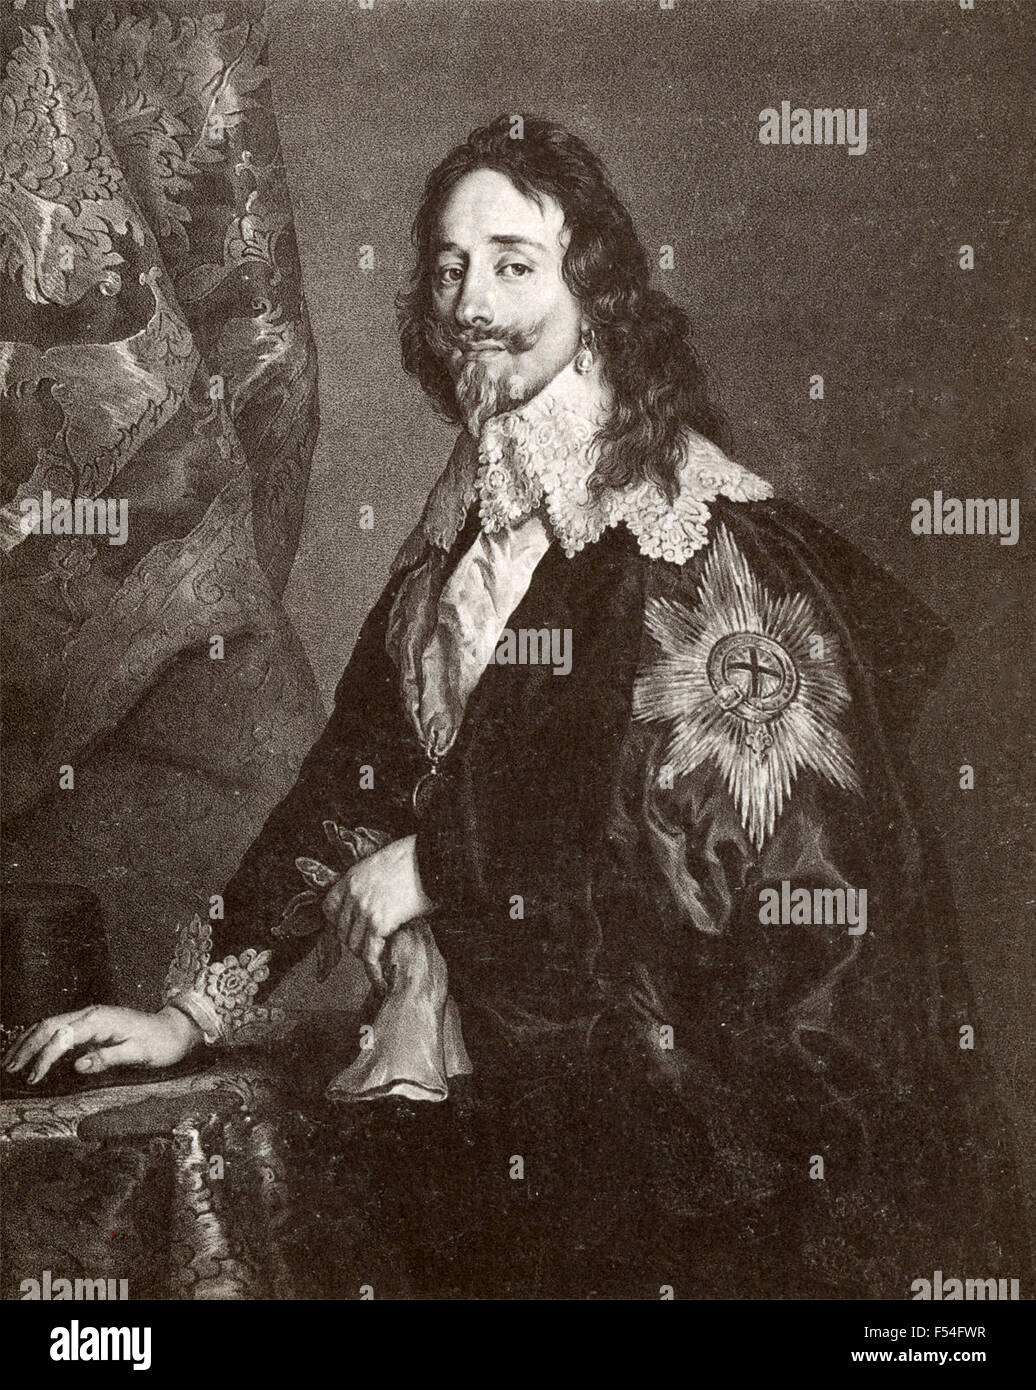 Portrait of King Charles I of England, painted by Van Dyck - Stock Image